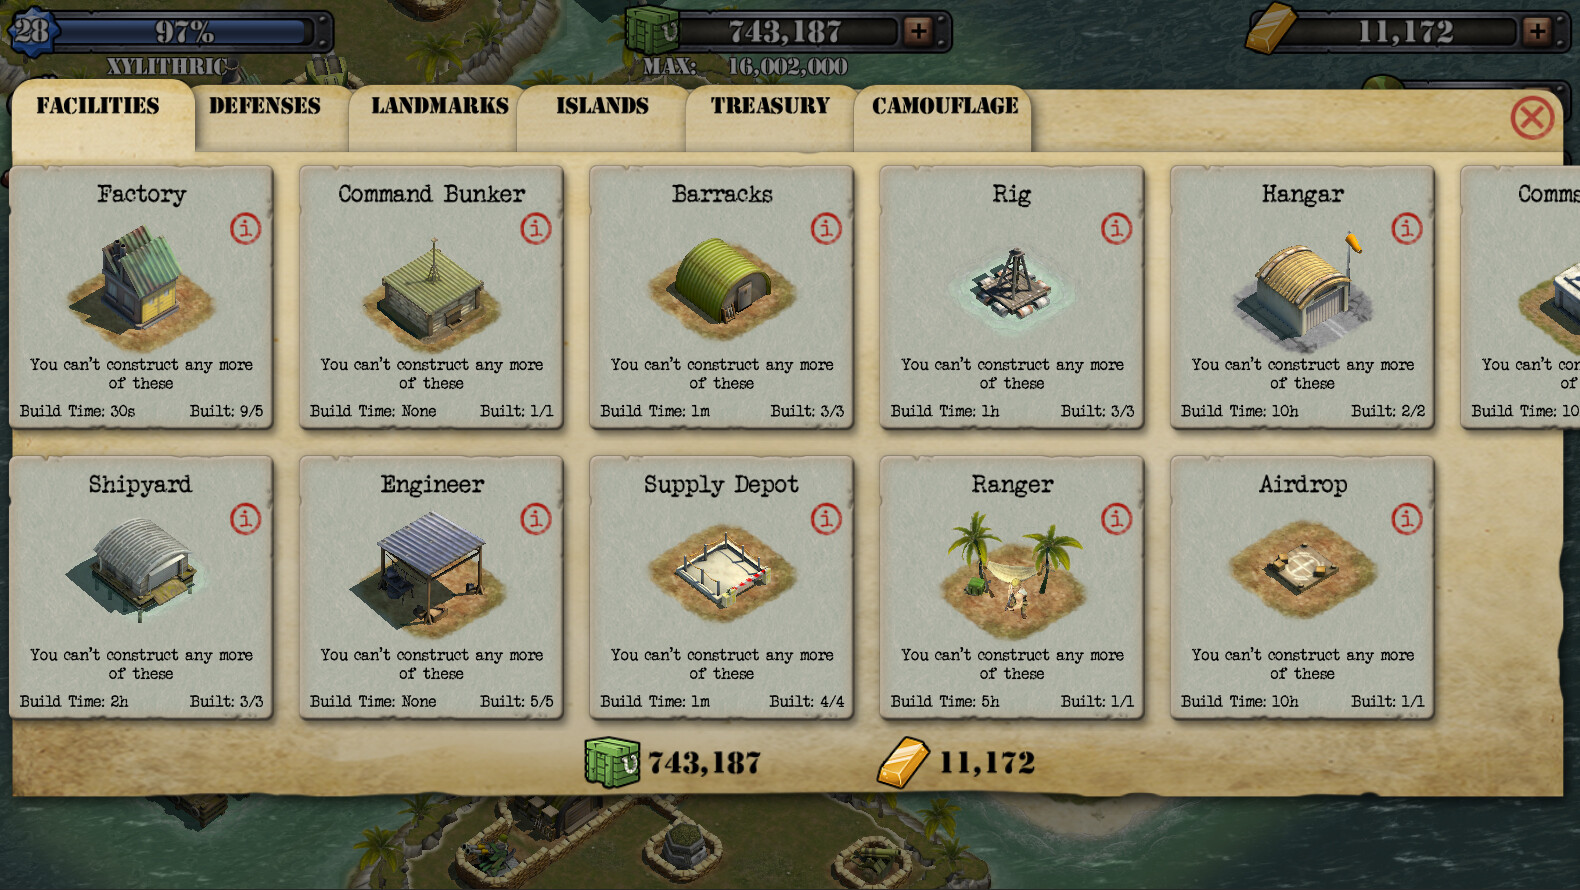 Screen cap of Game from V2 HD version showing the results of building concepts I initially made as well as the UI art I created.